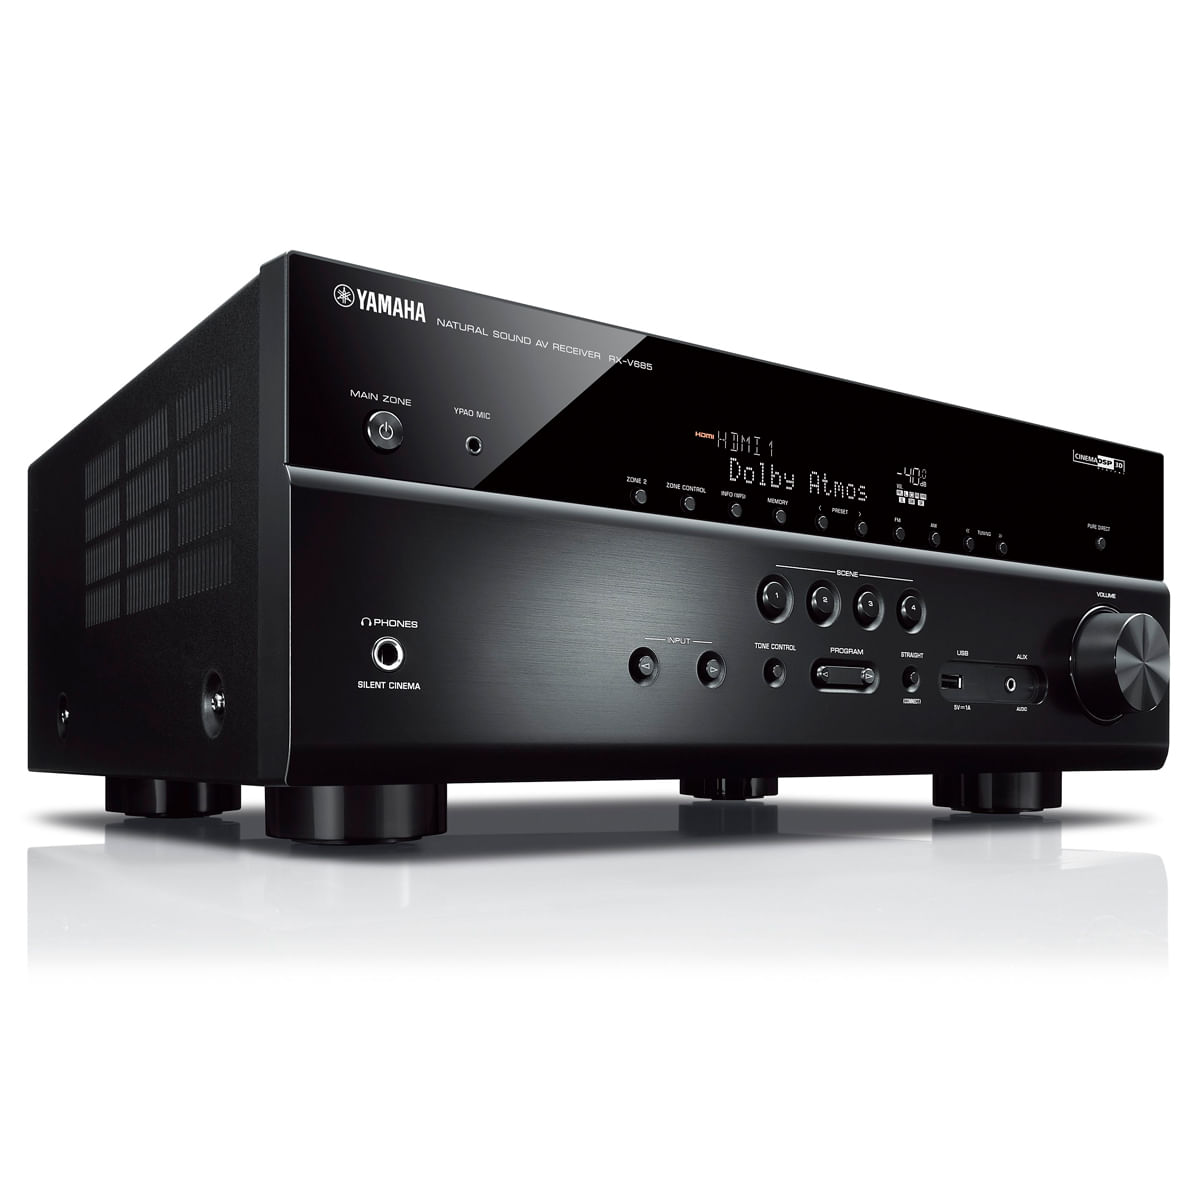 Receiver-Yamaha-RX-V685-7.2ch-Dolby-Atmos-Bluetooth-Wi-Fi-AirPlay-MusicCast-4K-UHD-HDR10-Principal